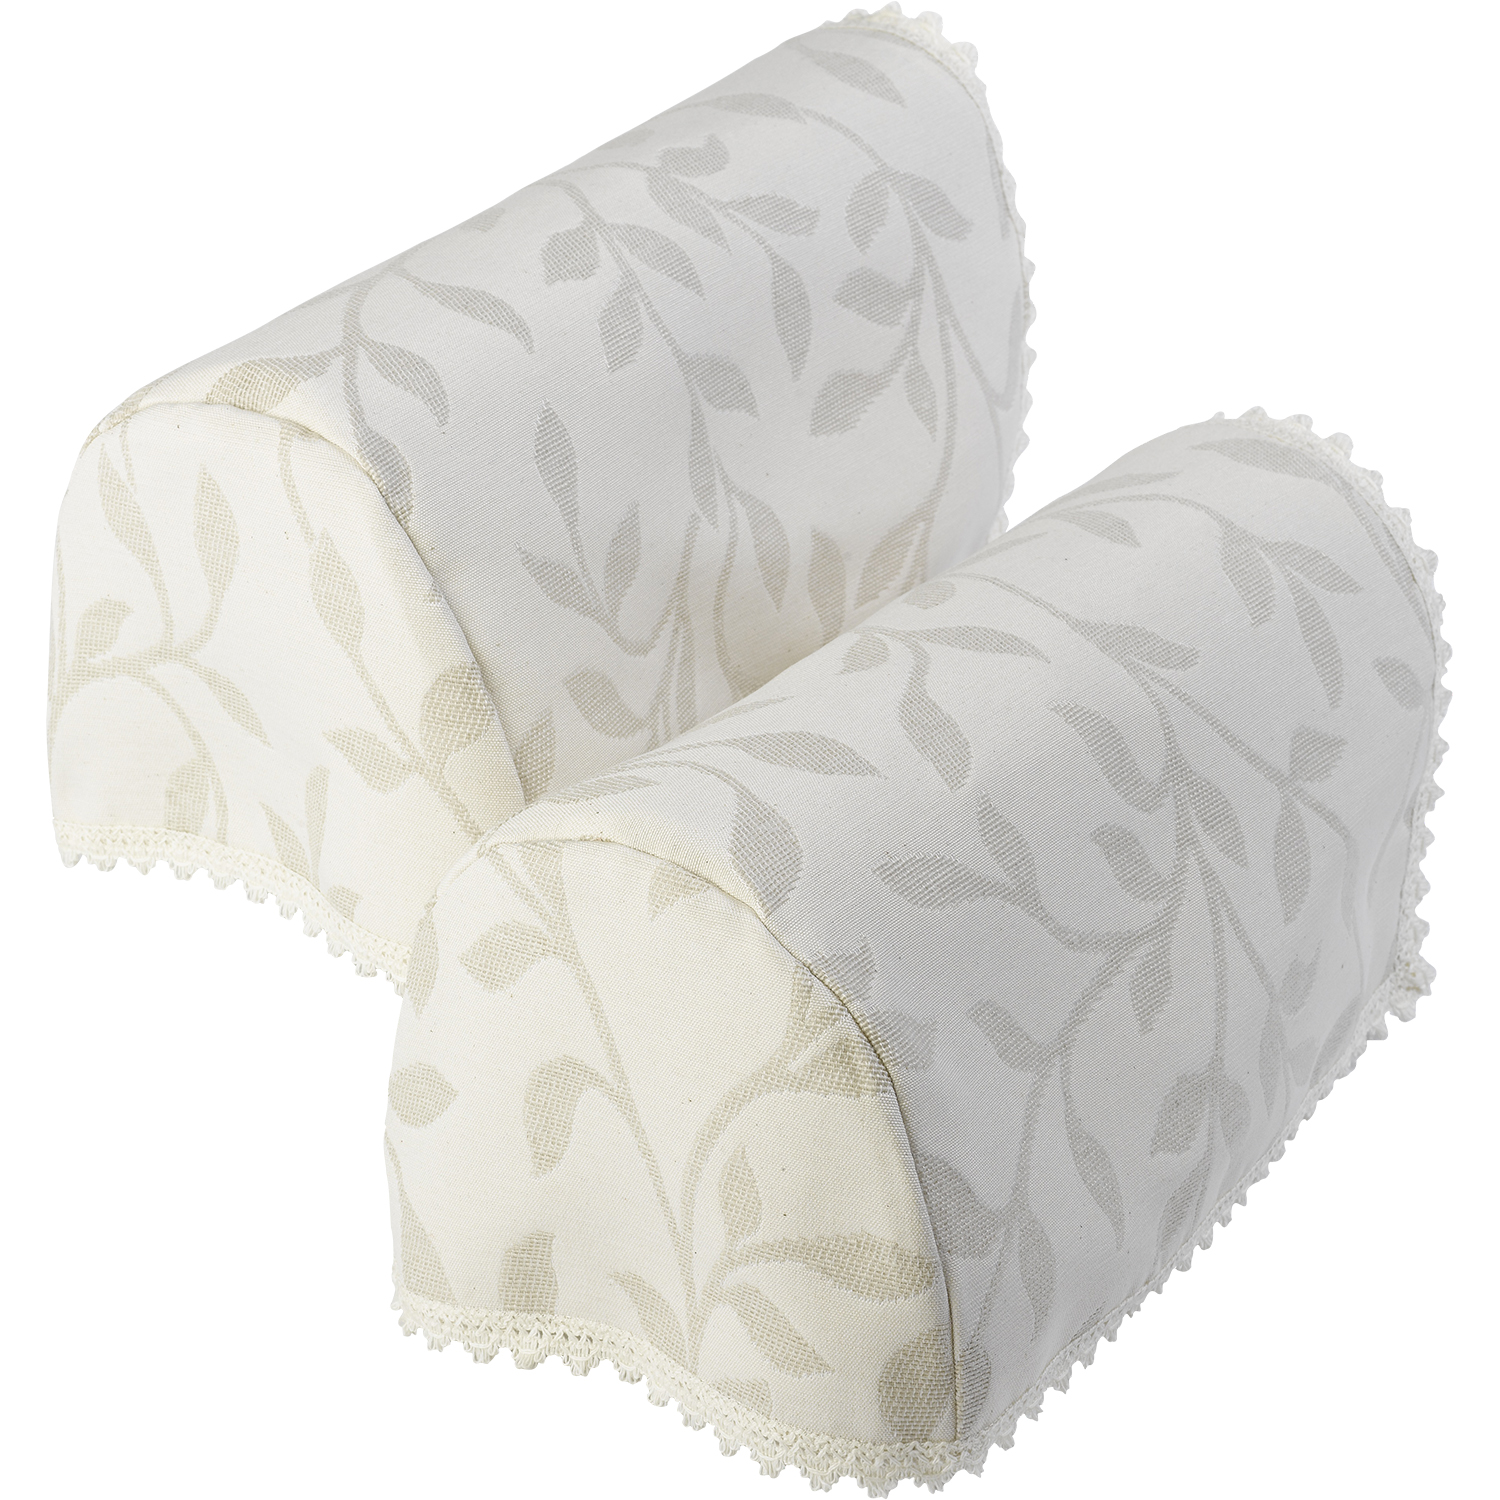 arm chair covers ebay walmart folding chairs and tables decorative pair of round caps traditional floral leaf